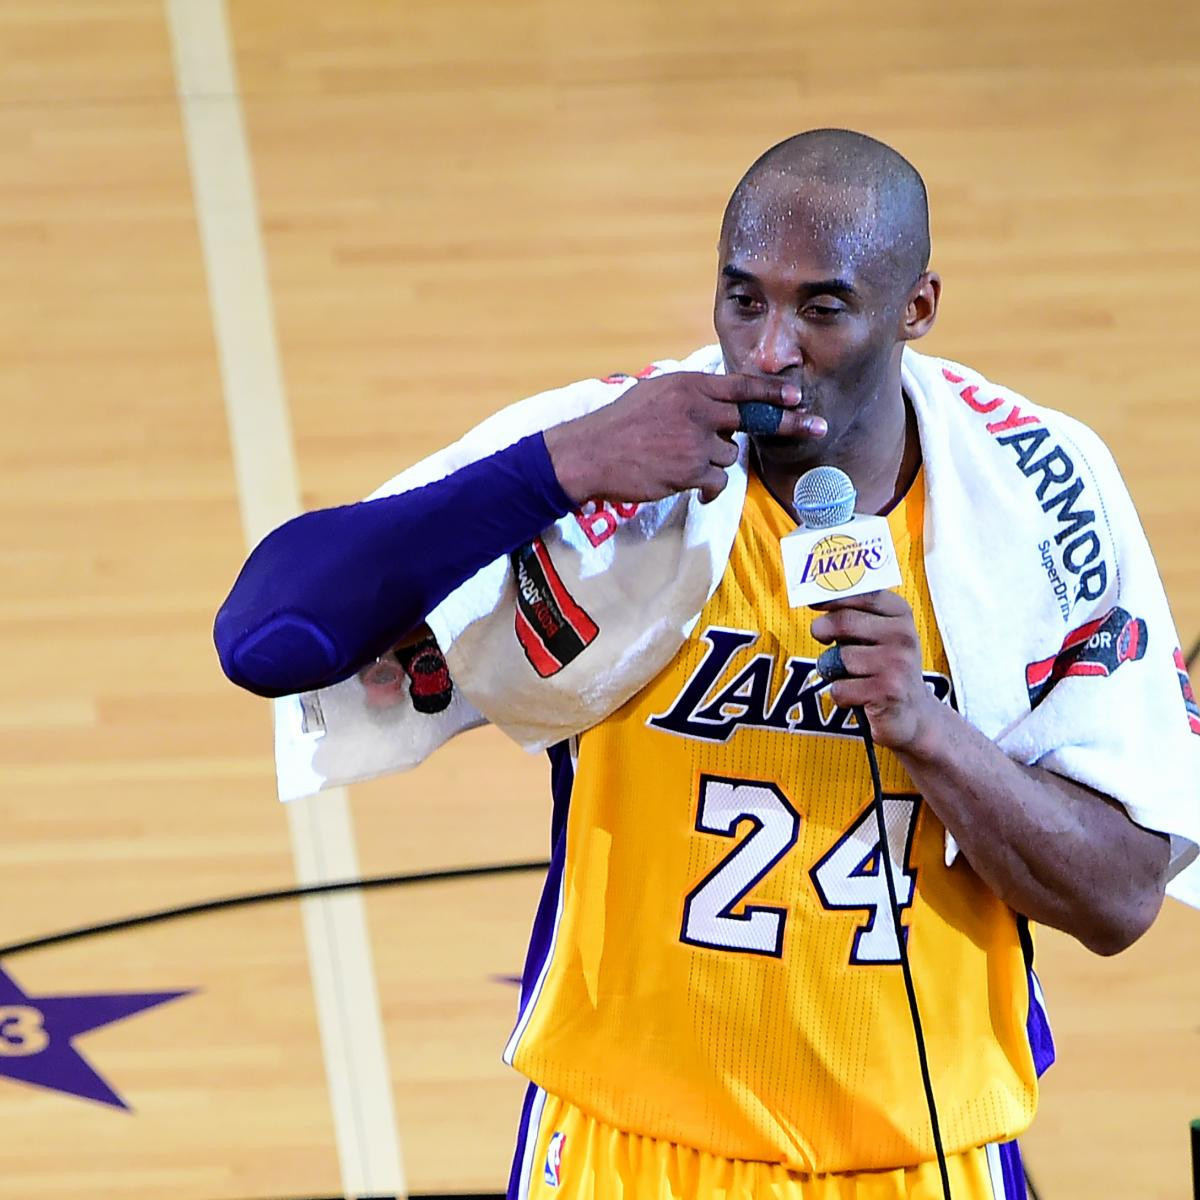 Following his death in January this year, a collector paid more than $33,000 for a towel Kobe Bryant used following his farewell NBA appearance for the Los Angeles Lakers in 2016 ©Getty Images